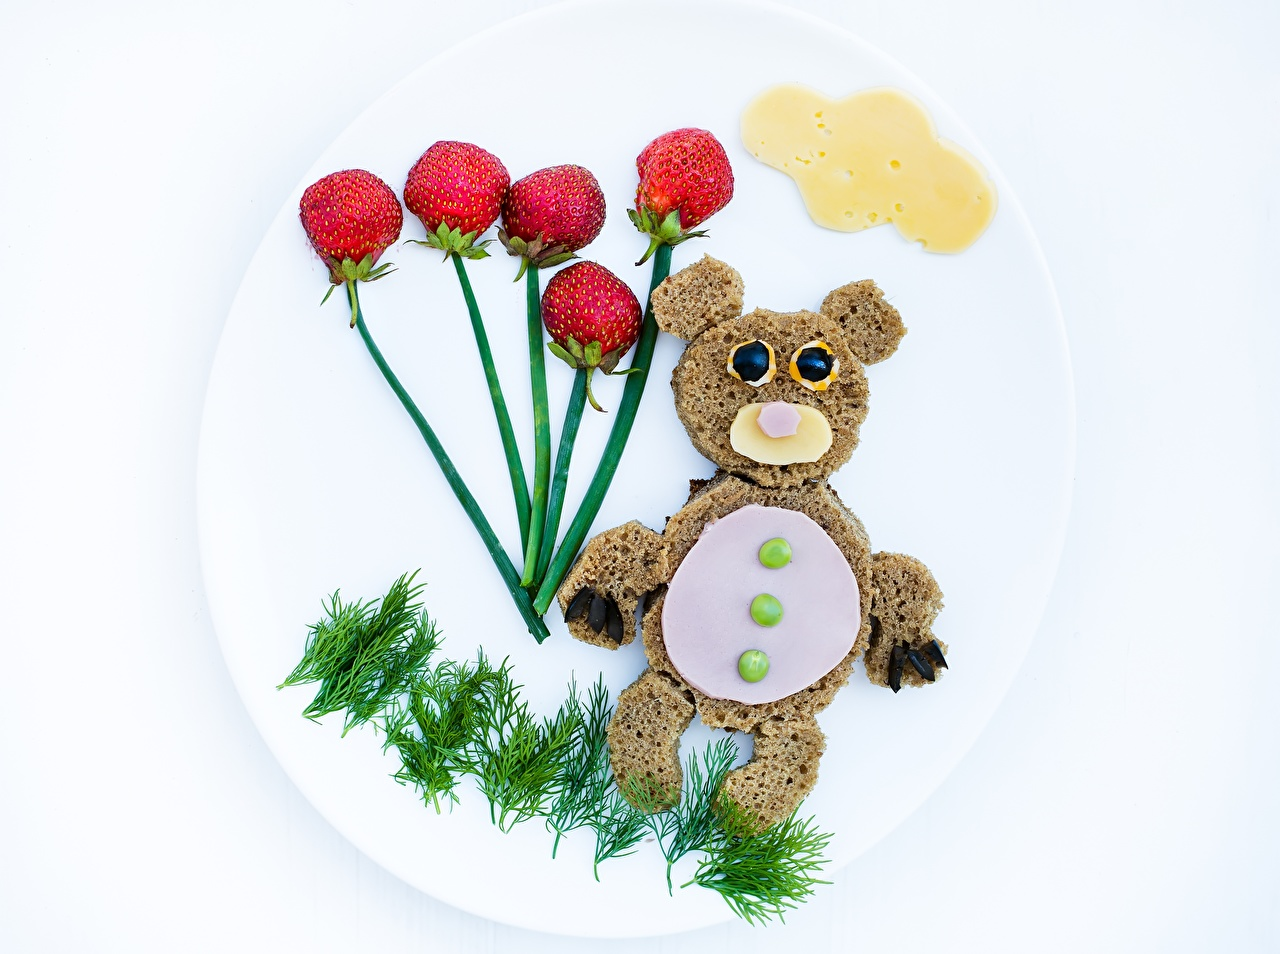 Wallpaper Bears Dill Bread Cheese Creative Strawberry Food Berry Plate bear